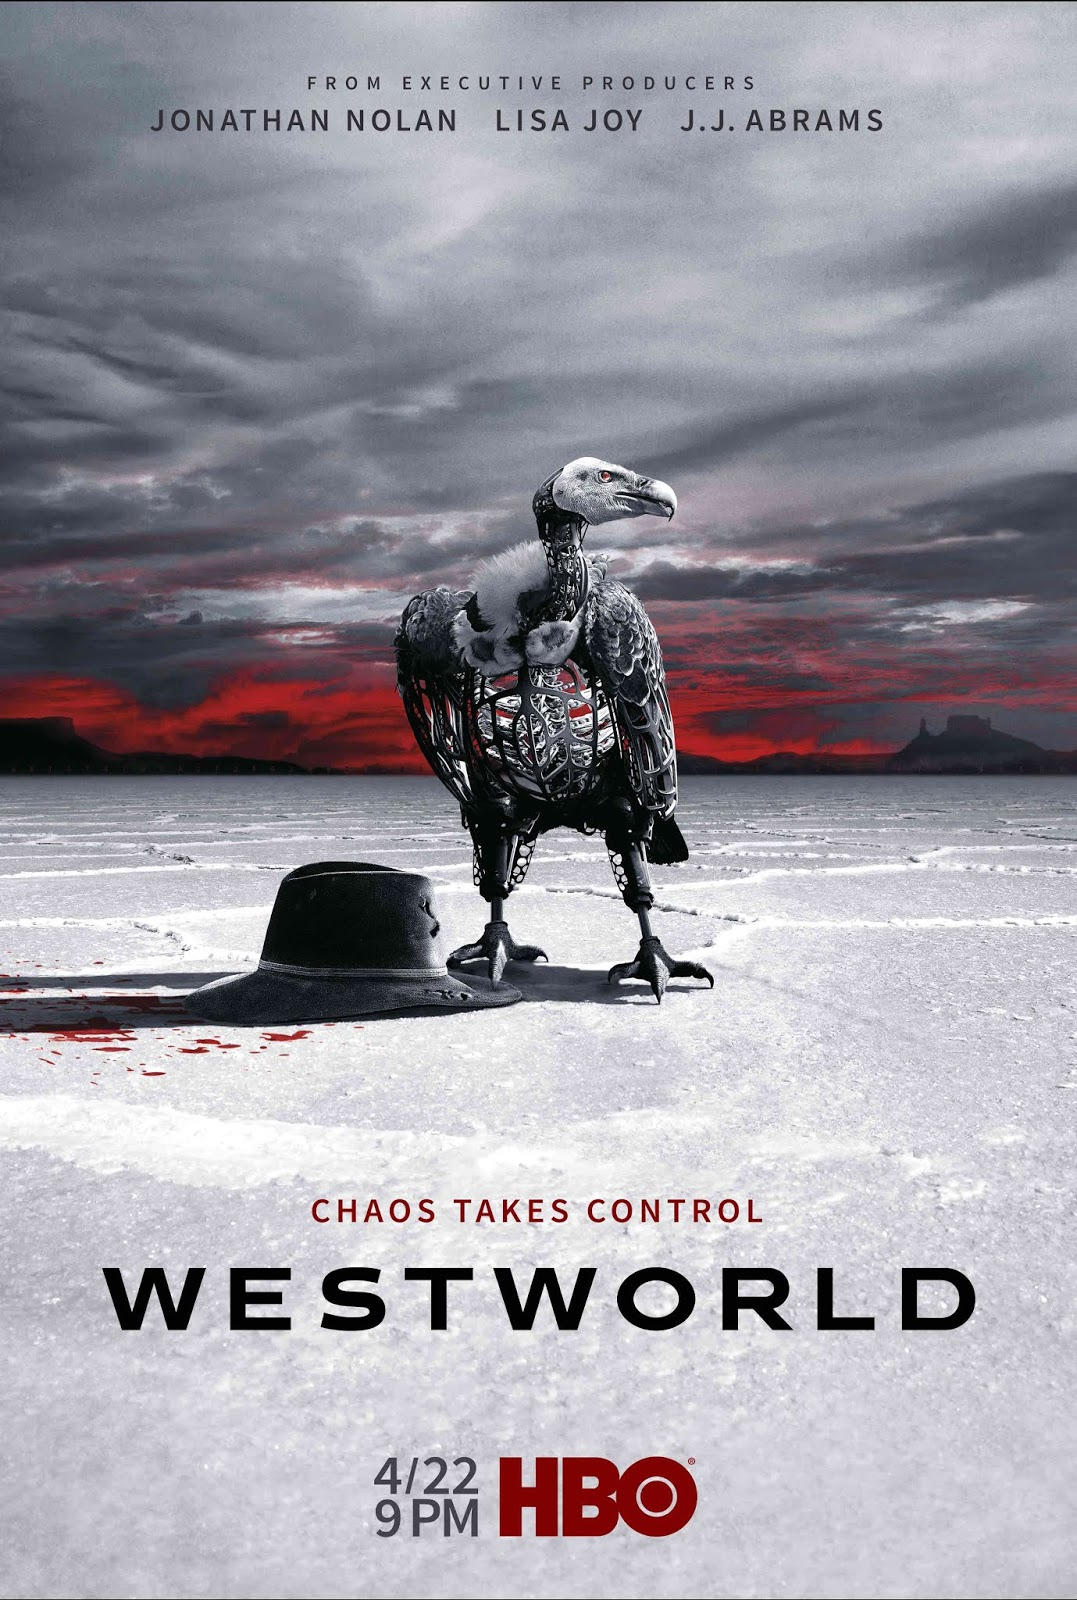 Download Movies, Tv Series, Games: Download Westworld Season 2 (480p